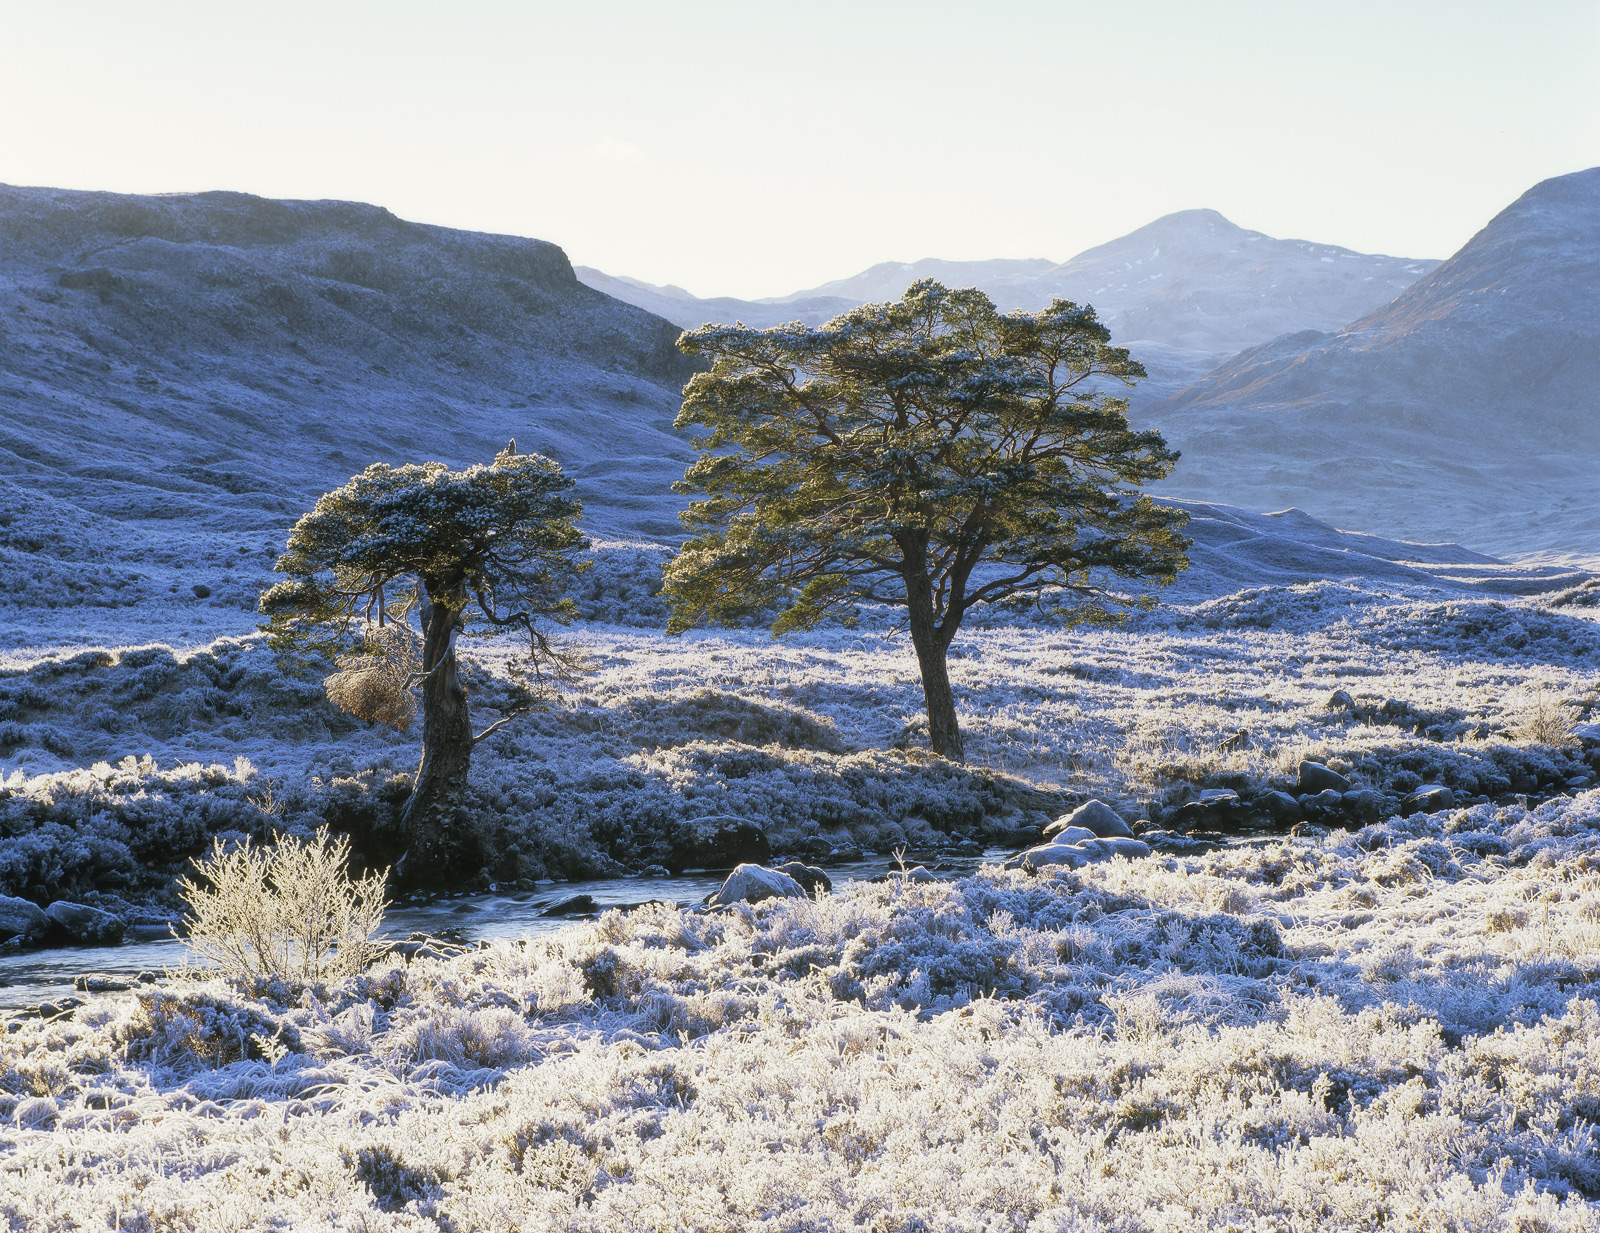 A vicious frost coated every tree, branch twig and blade of grass in thick hard white rime throughout the glen of Torridon and...